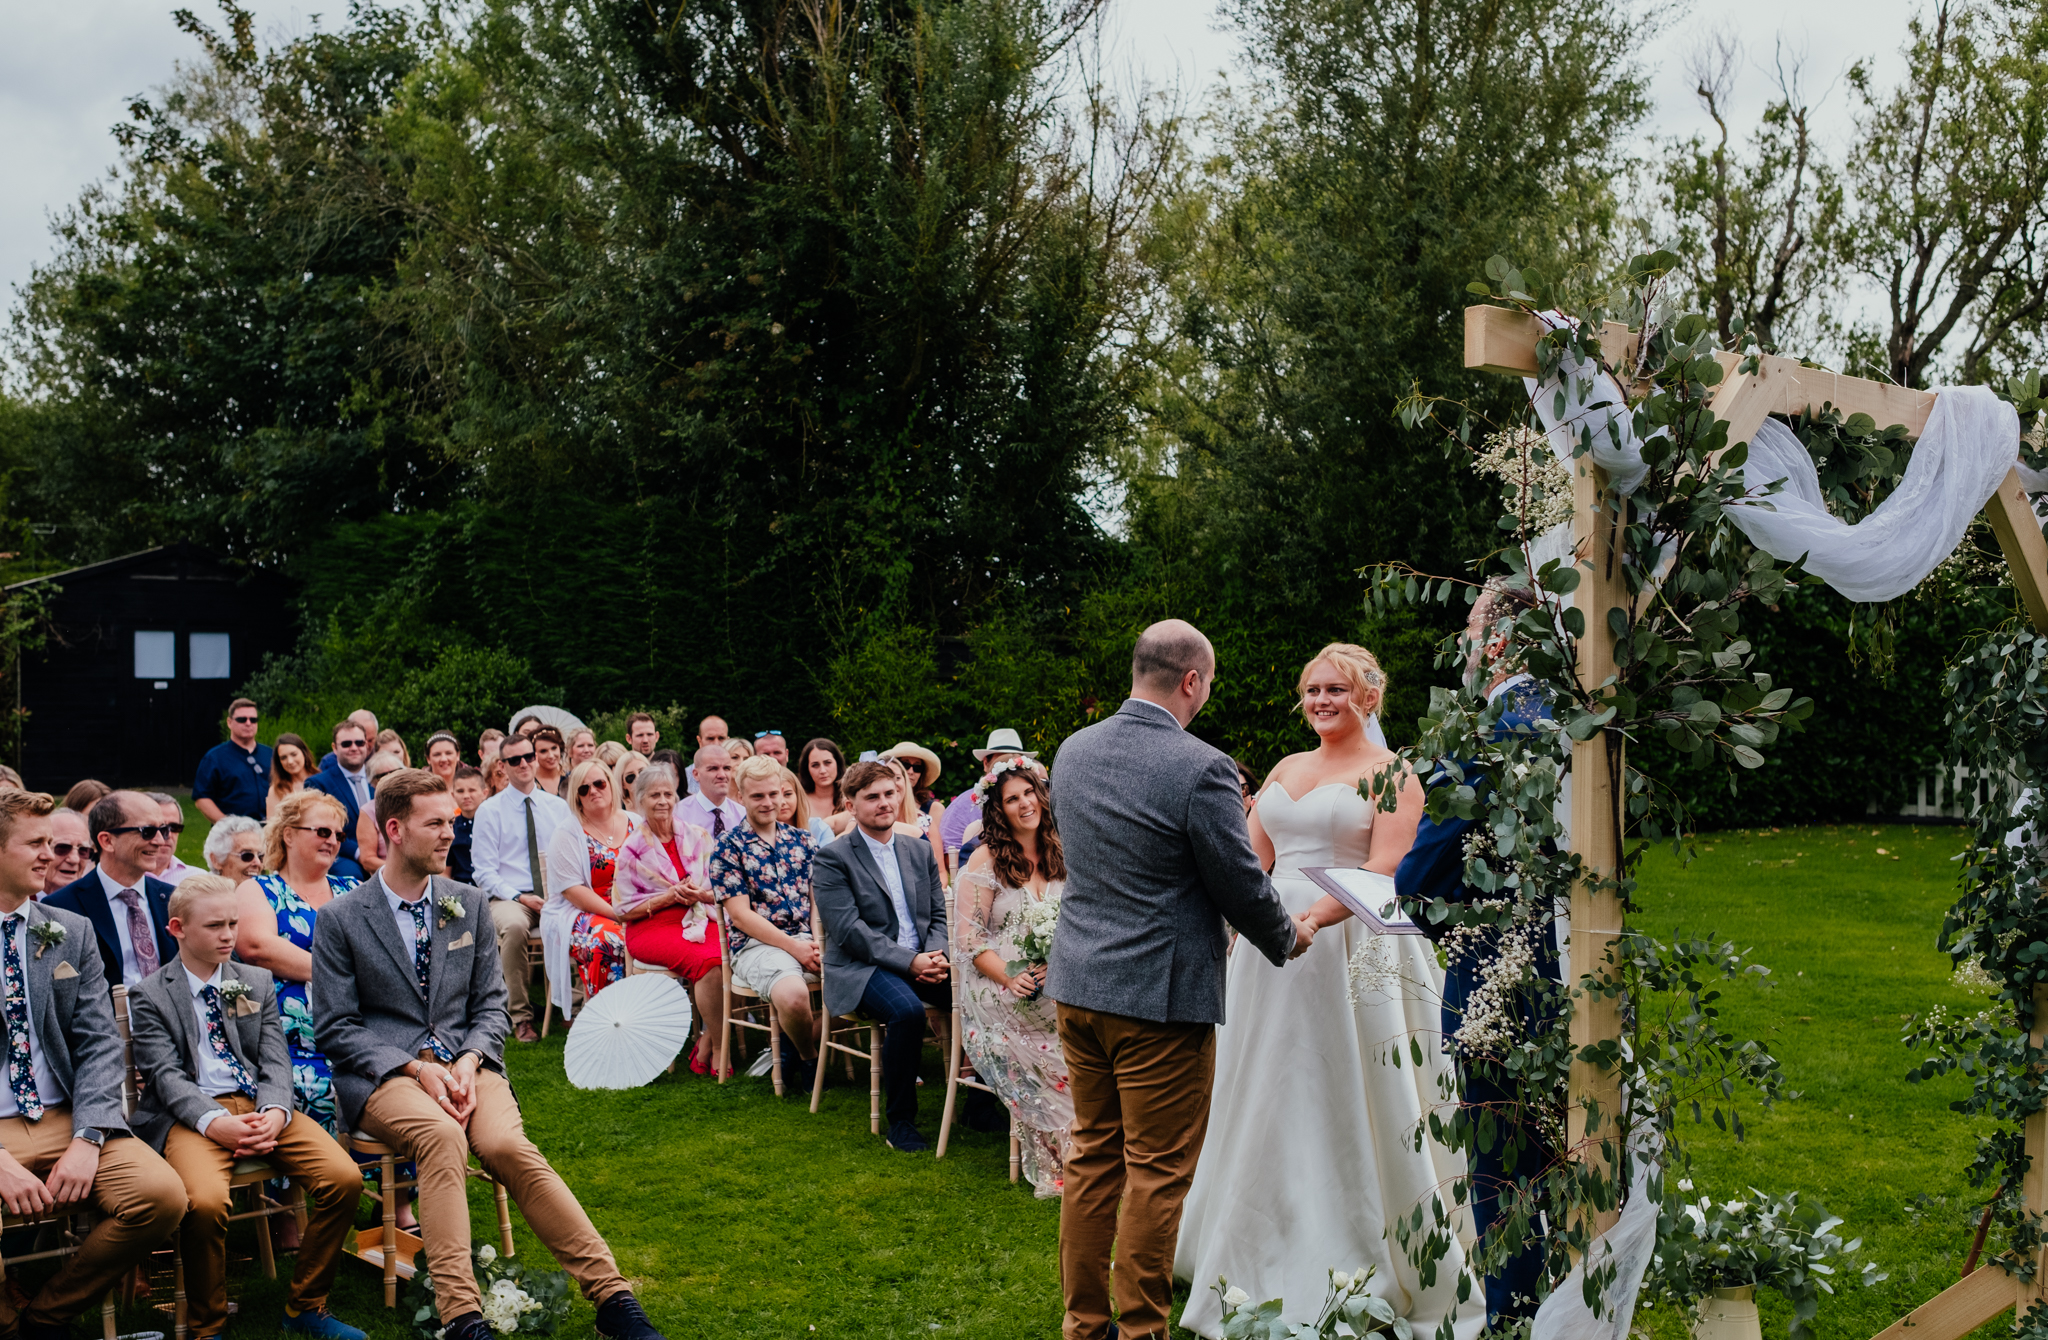 Guests watch as bride and groom exchange vows during outdoor wedding ceremony at Rumbolds Farm